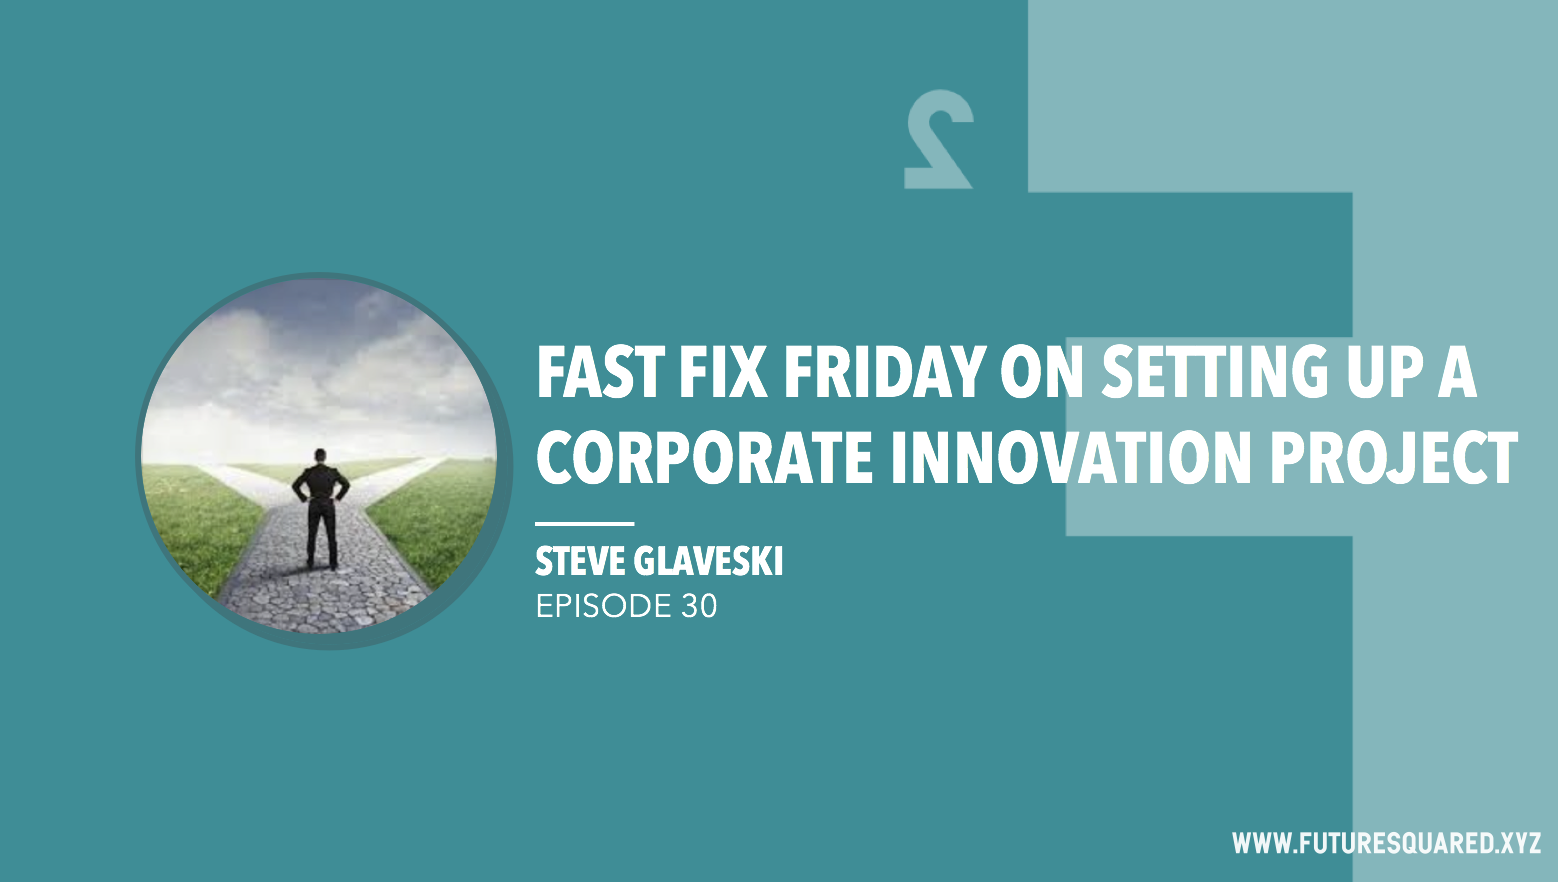 Future Squared Episode #30: Fast Fix Friday on Setting Up a Corporate Innovation Project